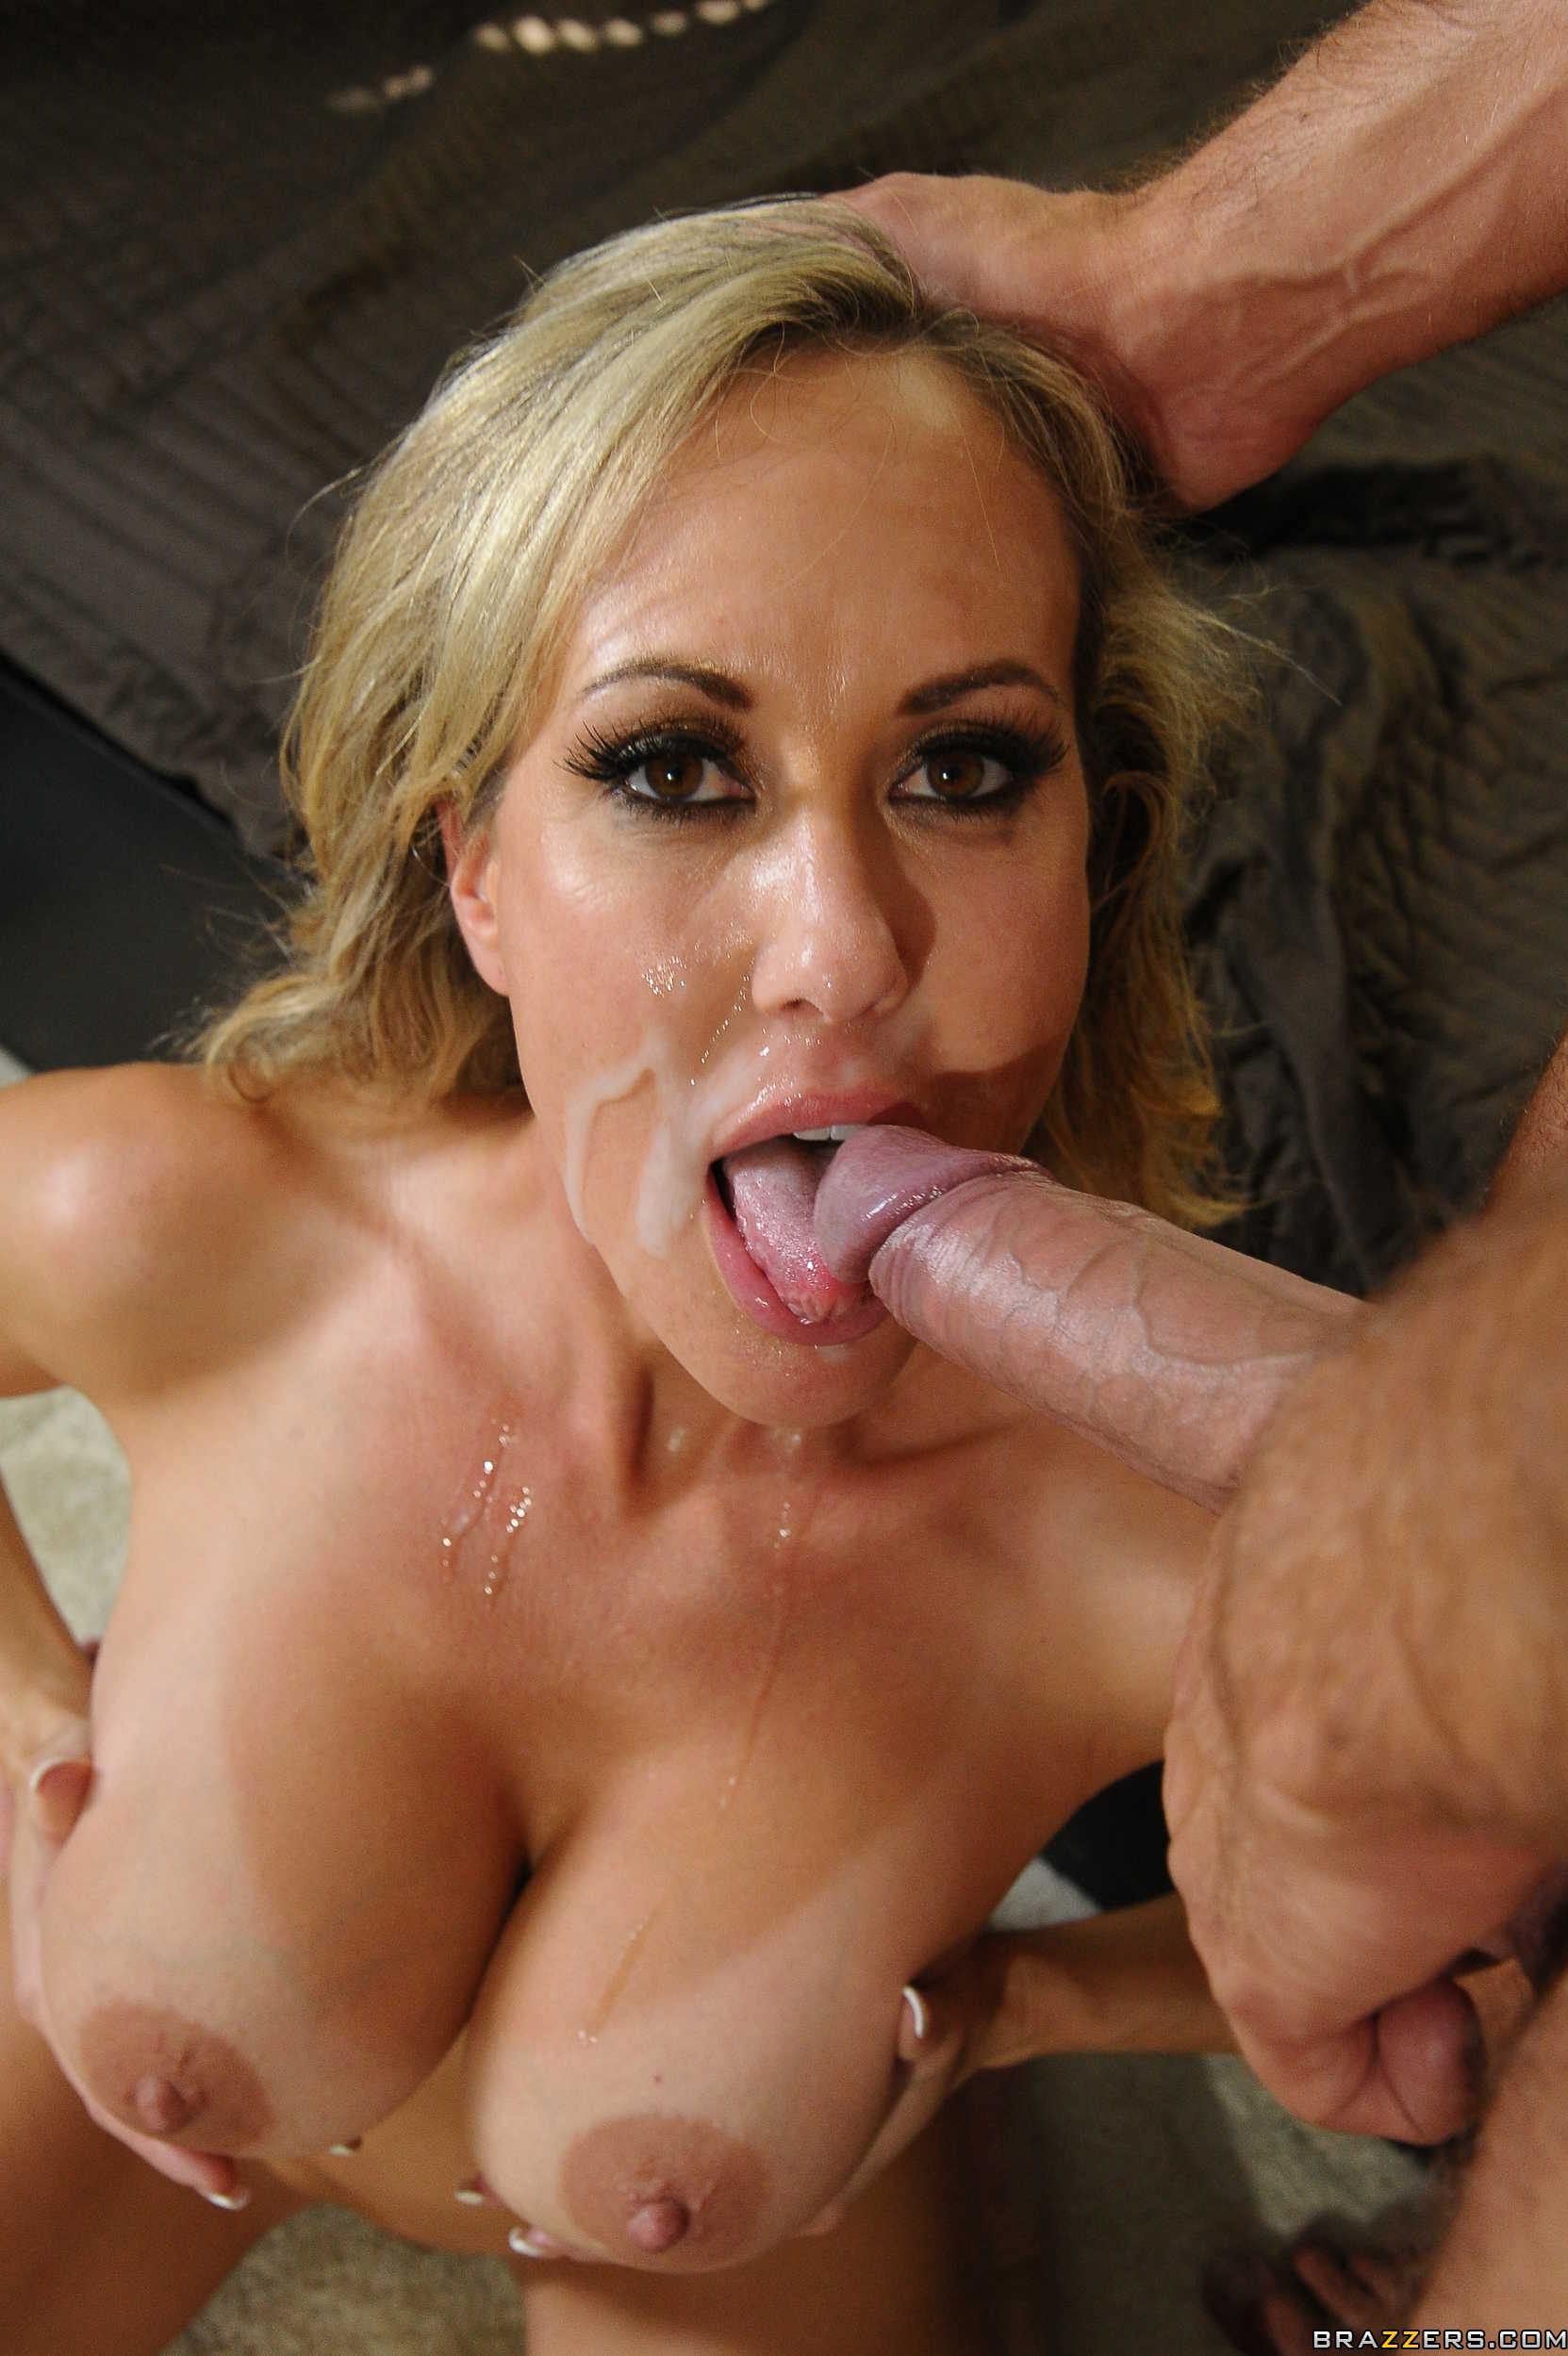 How mommy likes 2 play 4